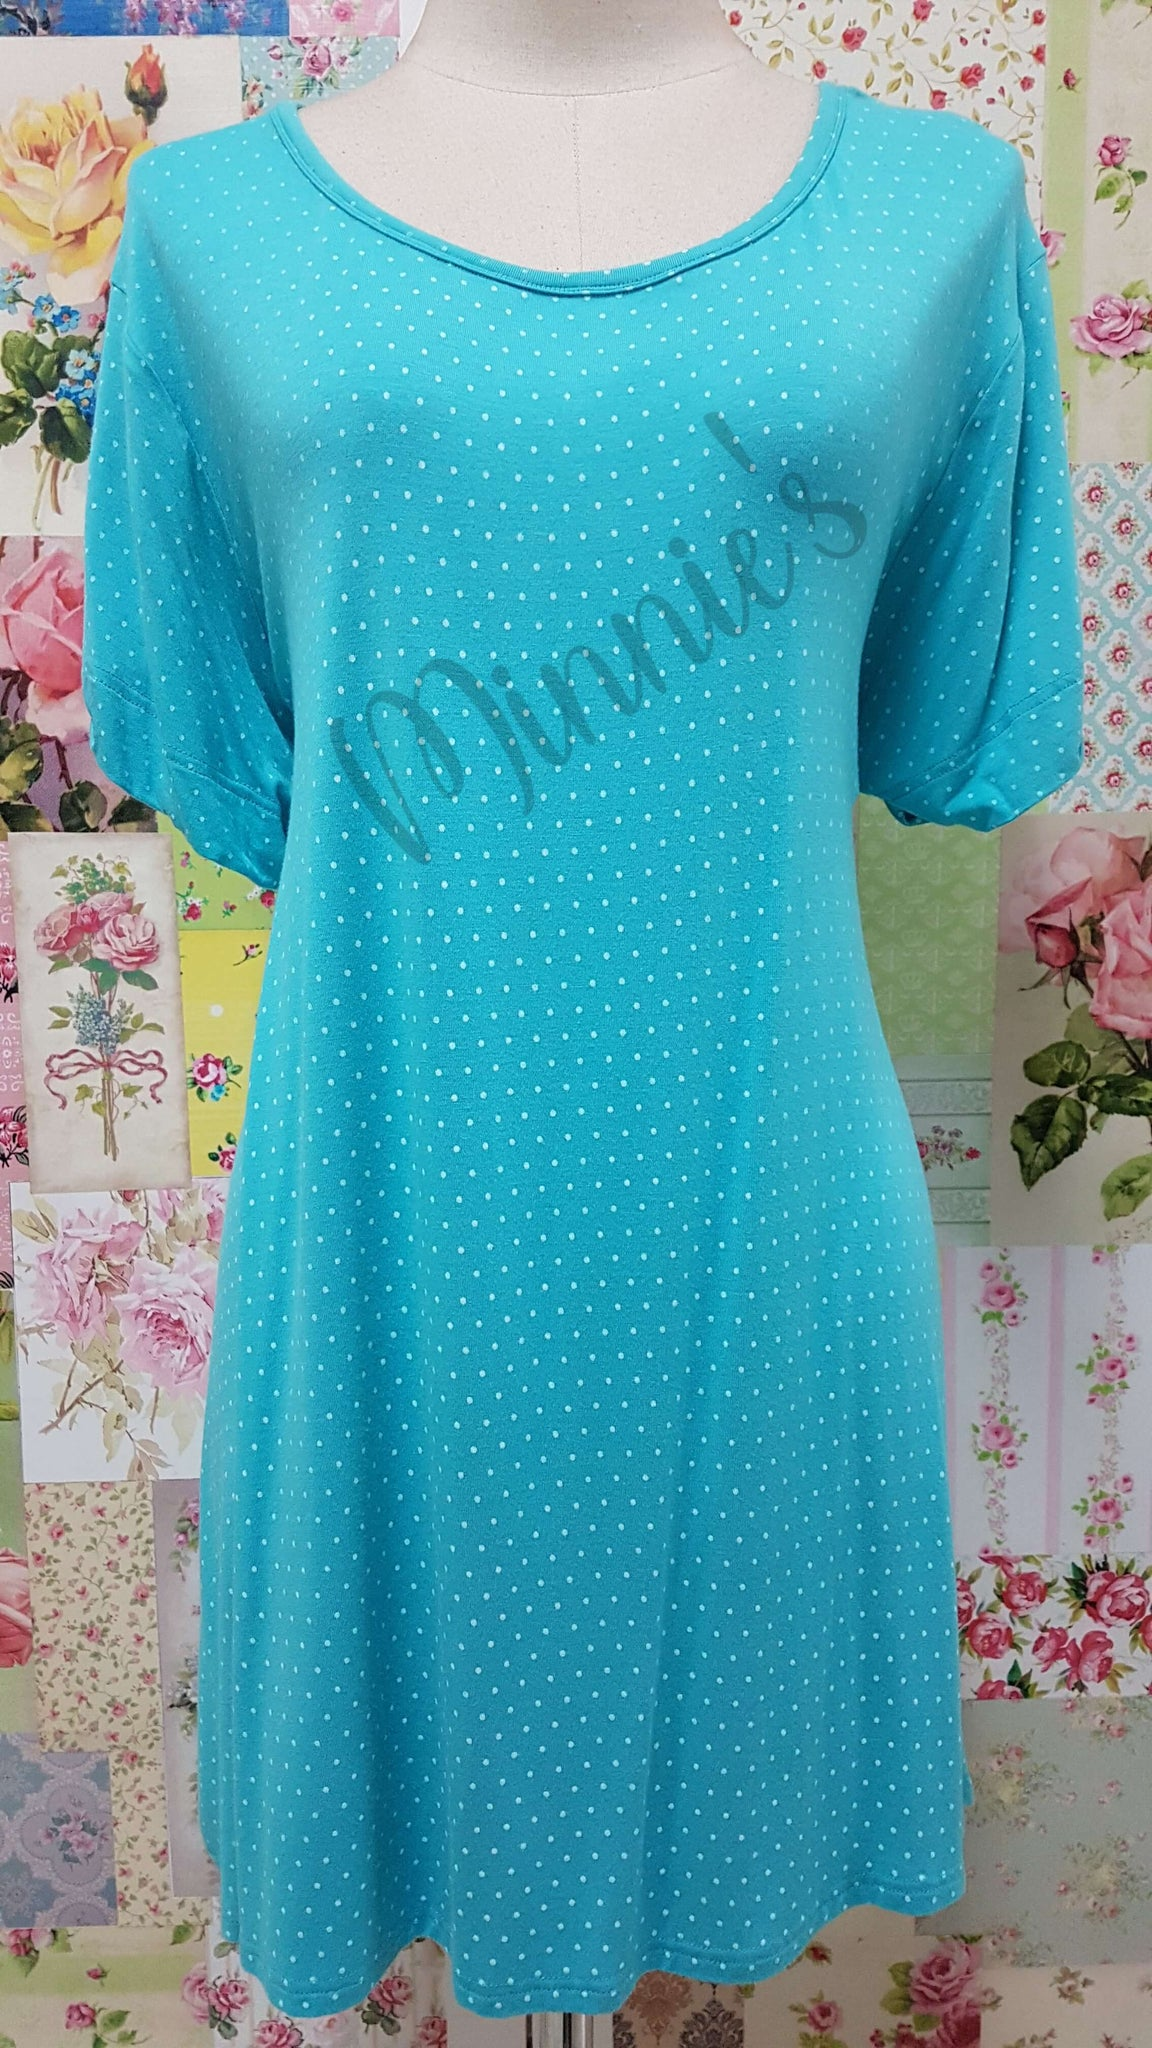 Turquoise Top BE026